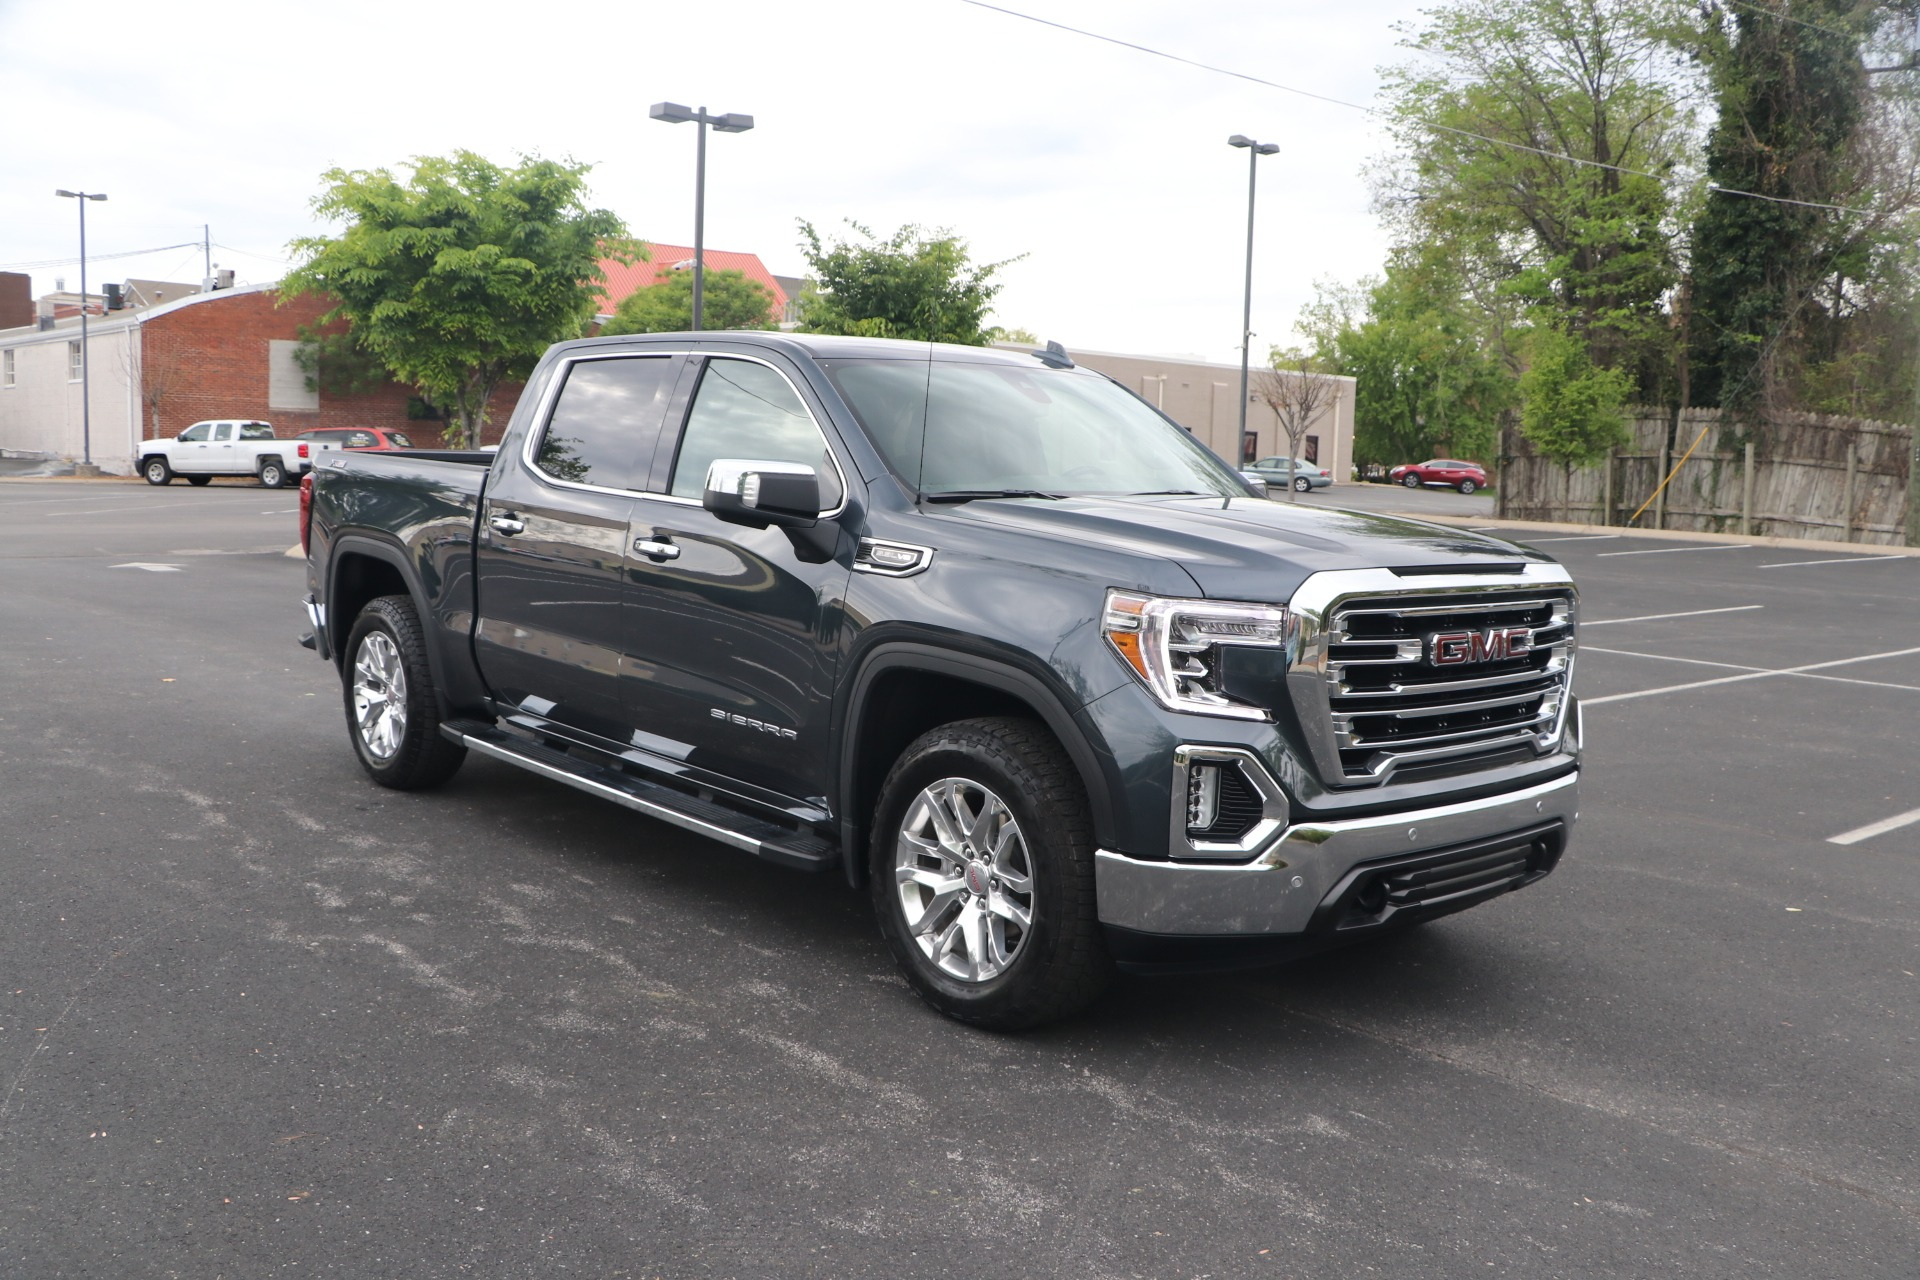 Used 2021 GMC Sierra 1500 SLT 4WD CREW CAB W/NAV for sale Sold at Auto Collection in Murfreesboro TN 37130 1